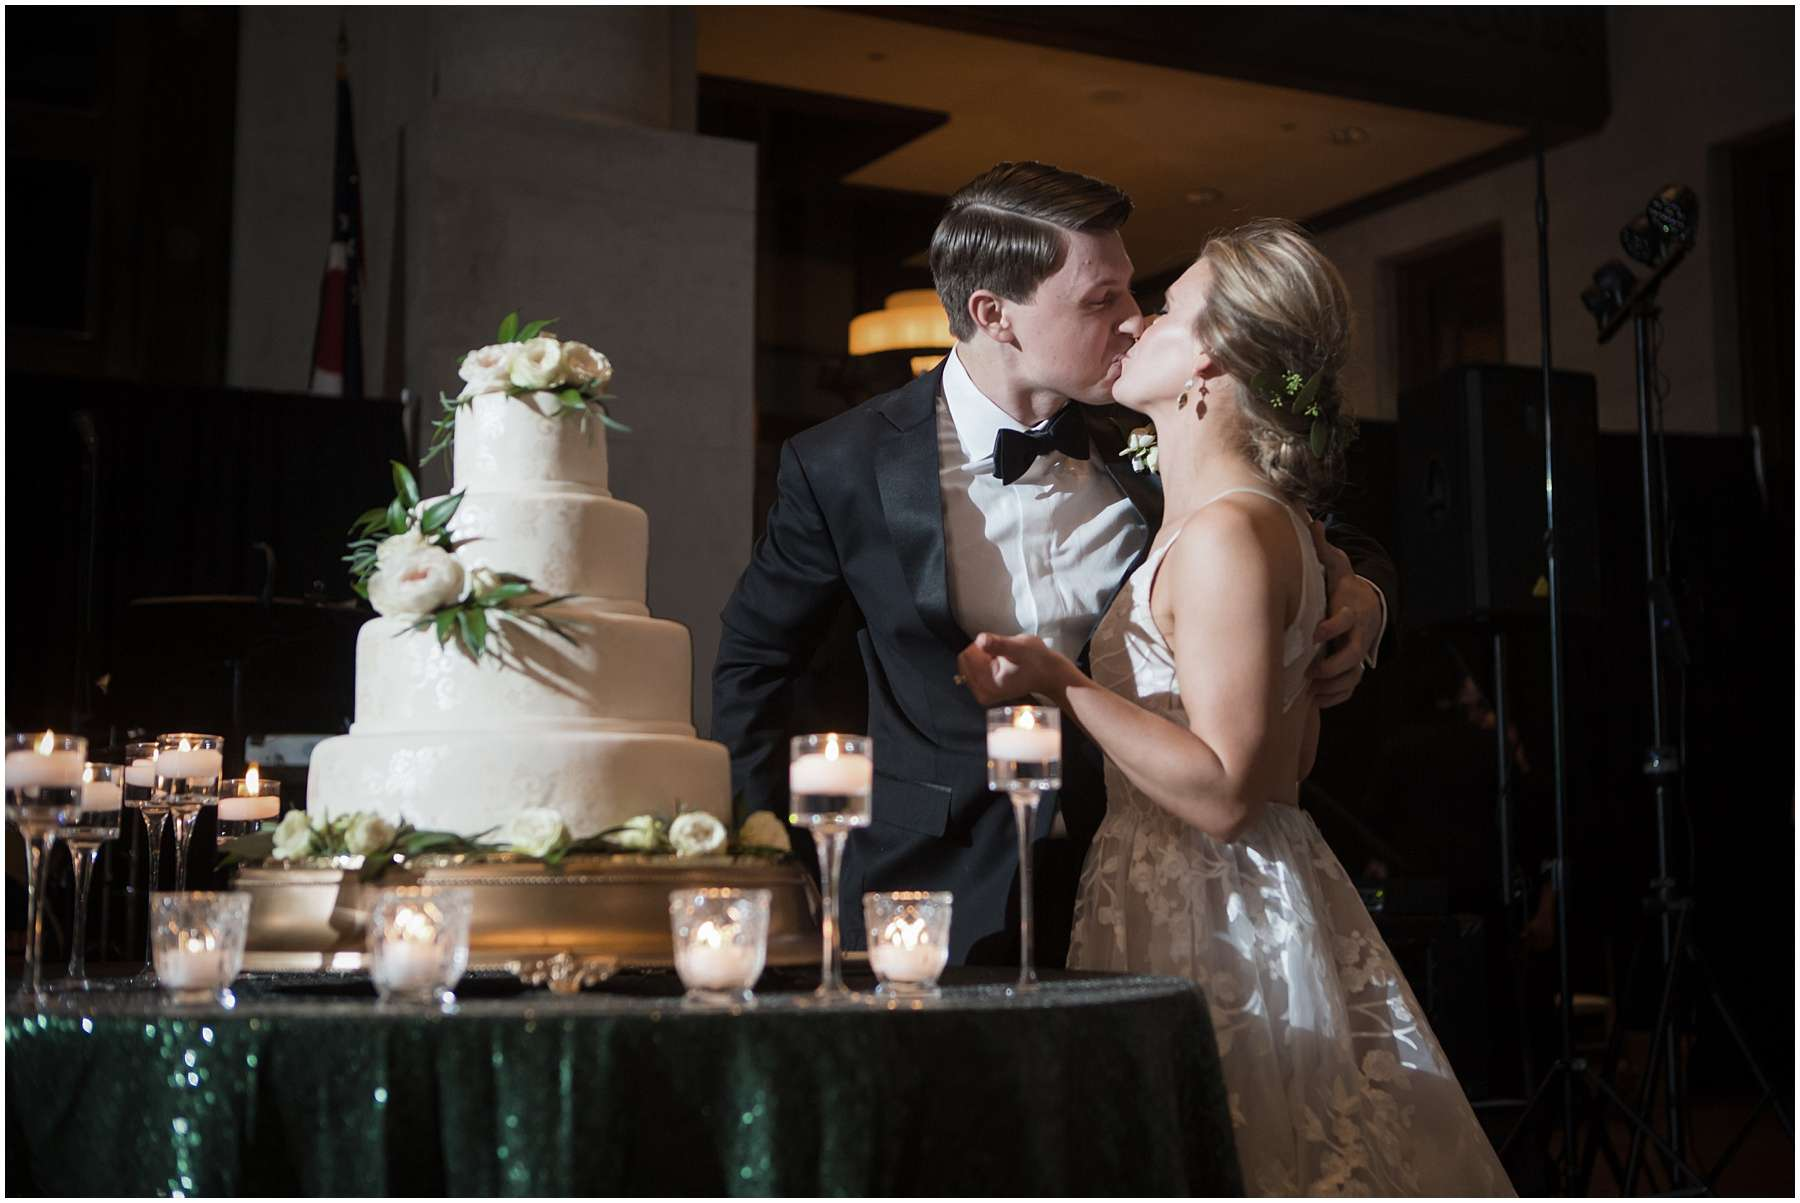 Wedding at the Ohio Statehouse | Columbus Ohio Weddings 212